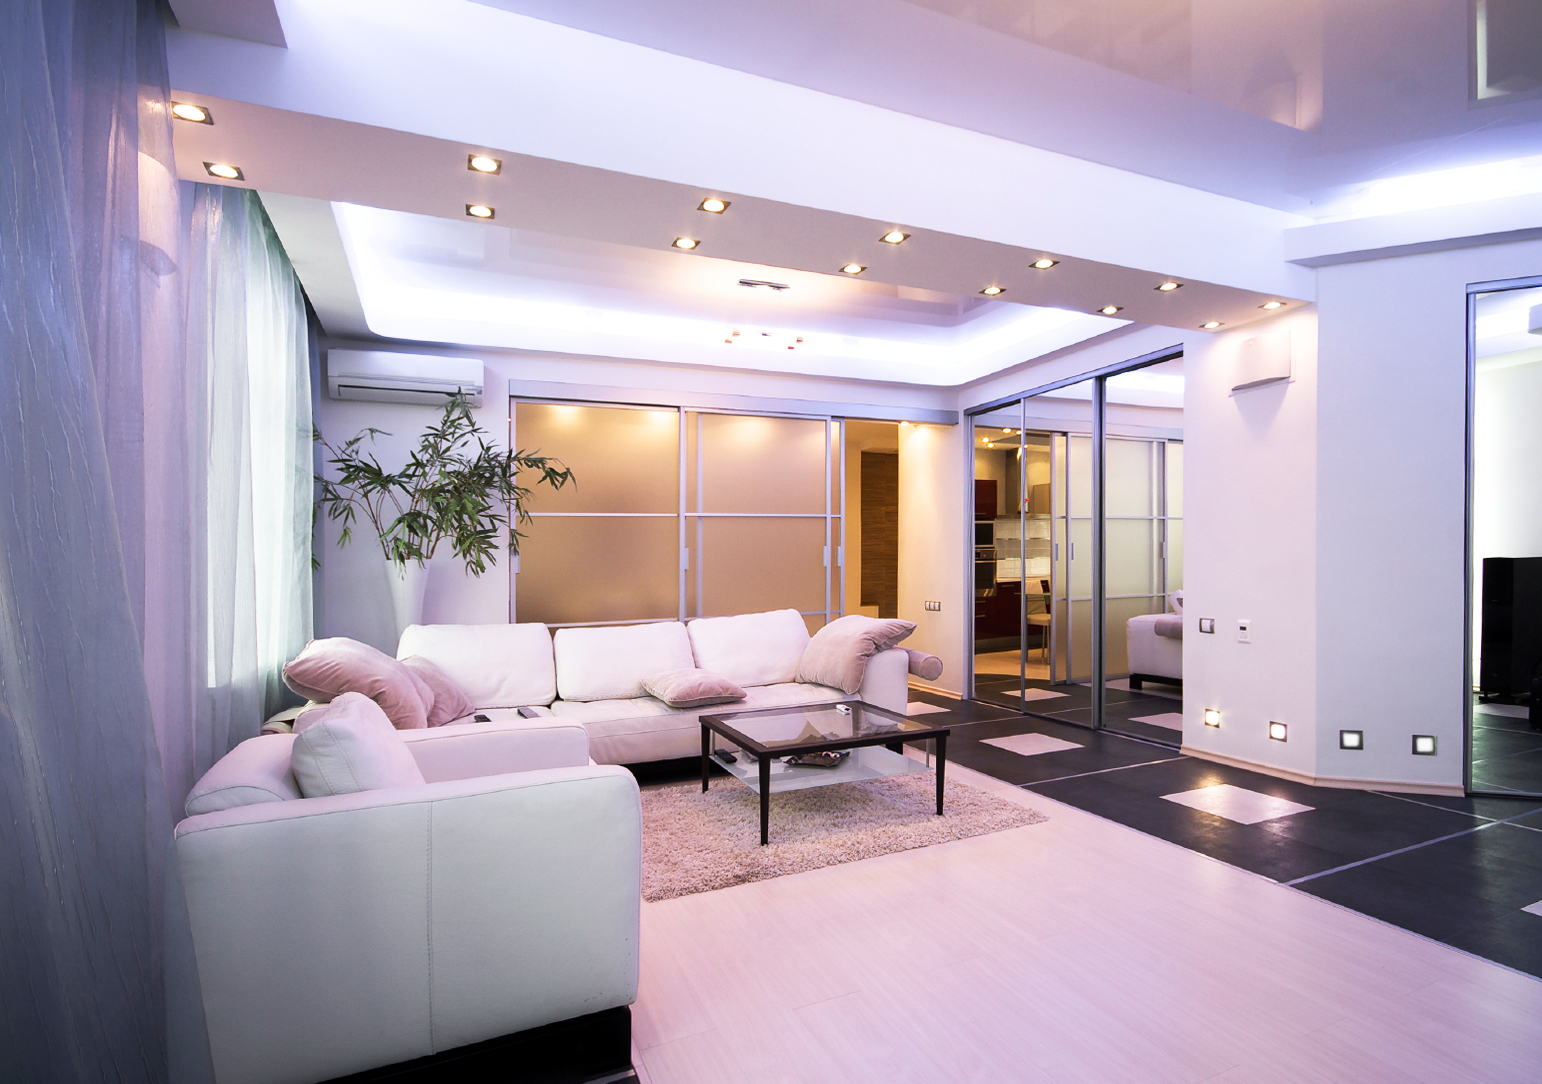 wohnzimmer beleuchtung led - Home Creation